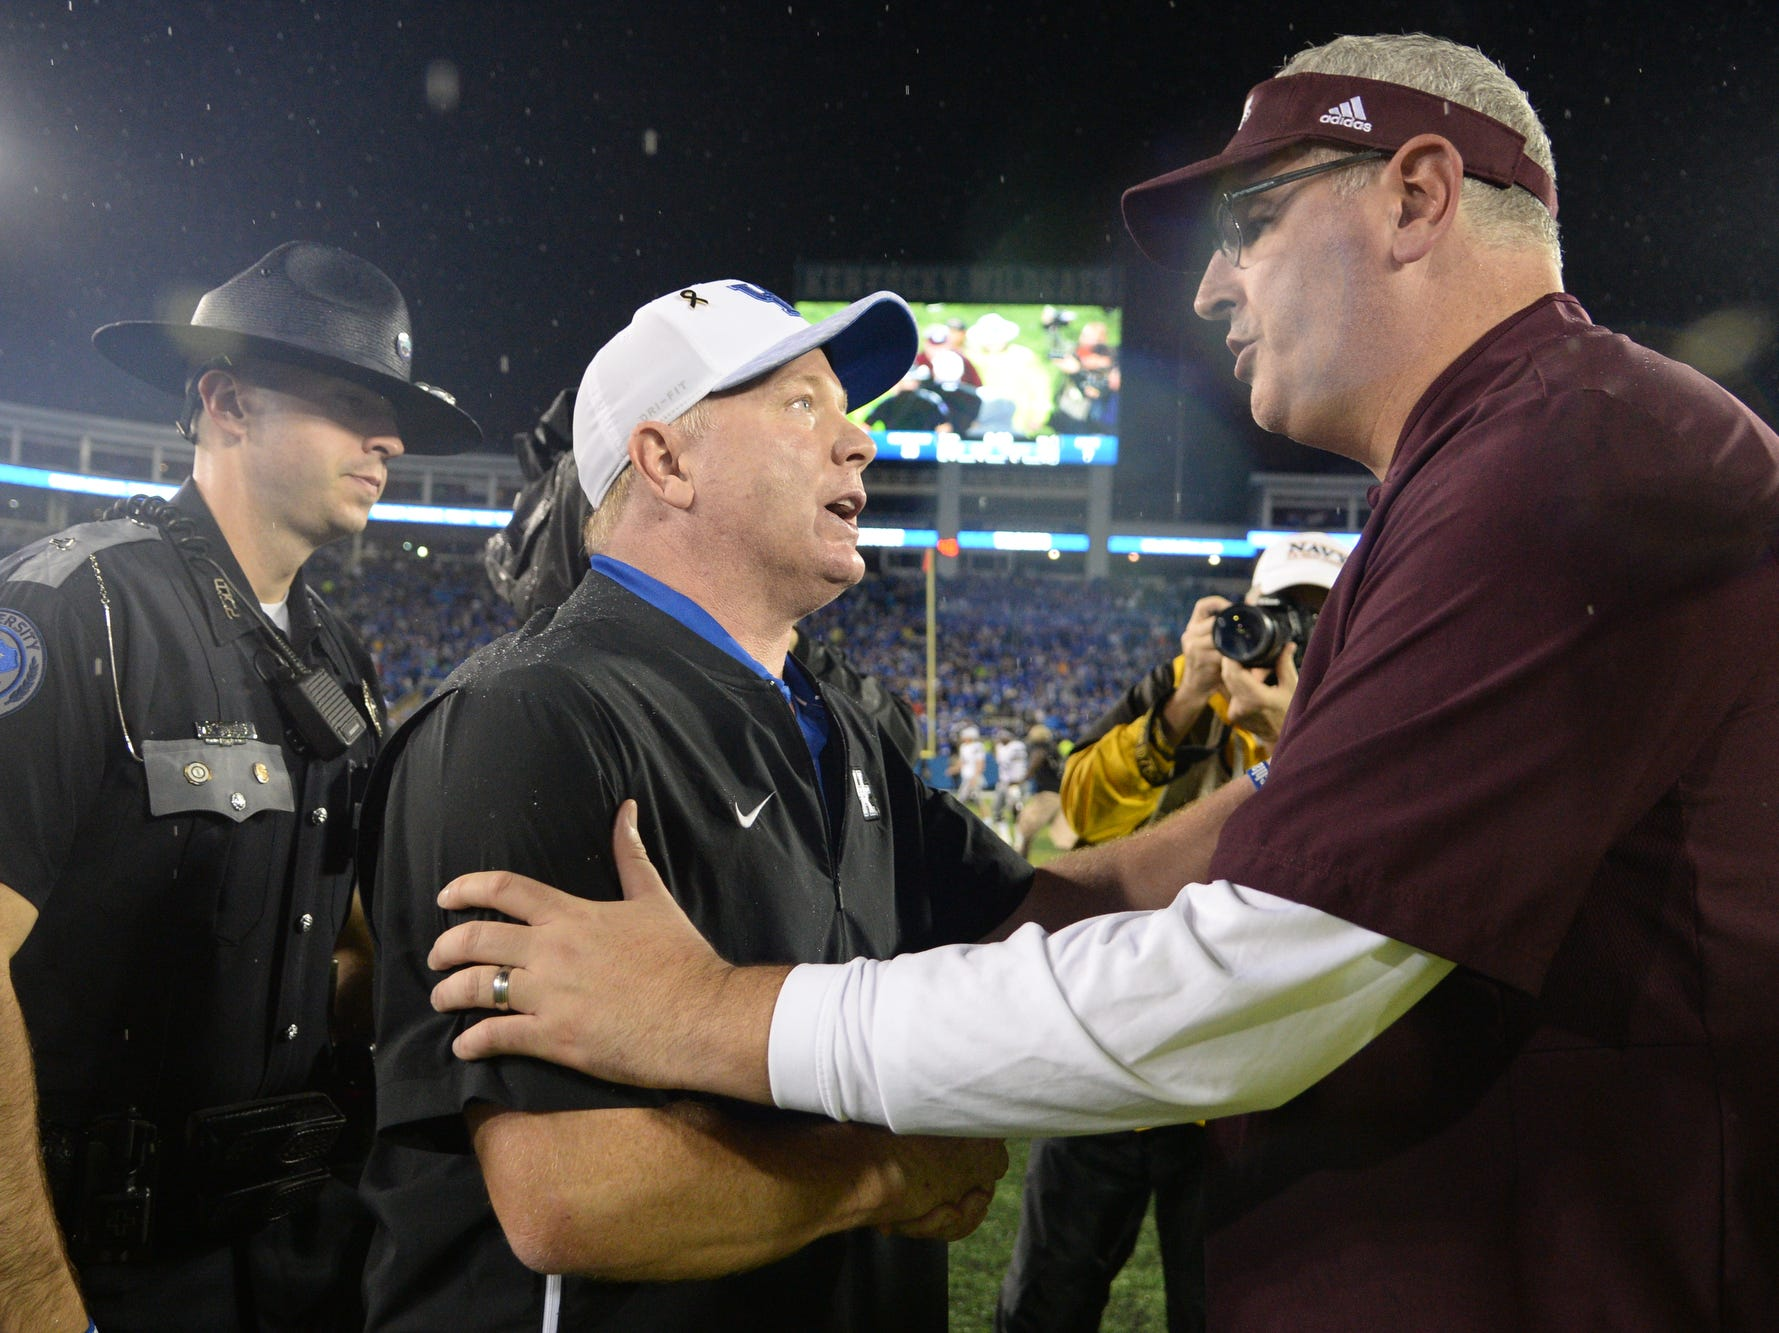 UK head coach Mark Stoops shakes hands with Mississippi State head coach Joe Moorhead after the University of Kentucky football game against Mississippi State at Kroger Field in Lexington, Kentucky on Saturday, September 22, 2018.